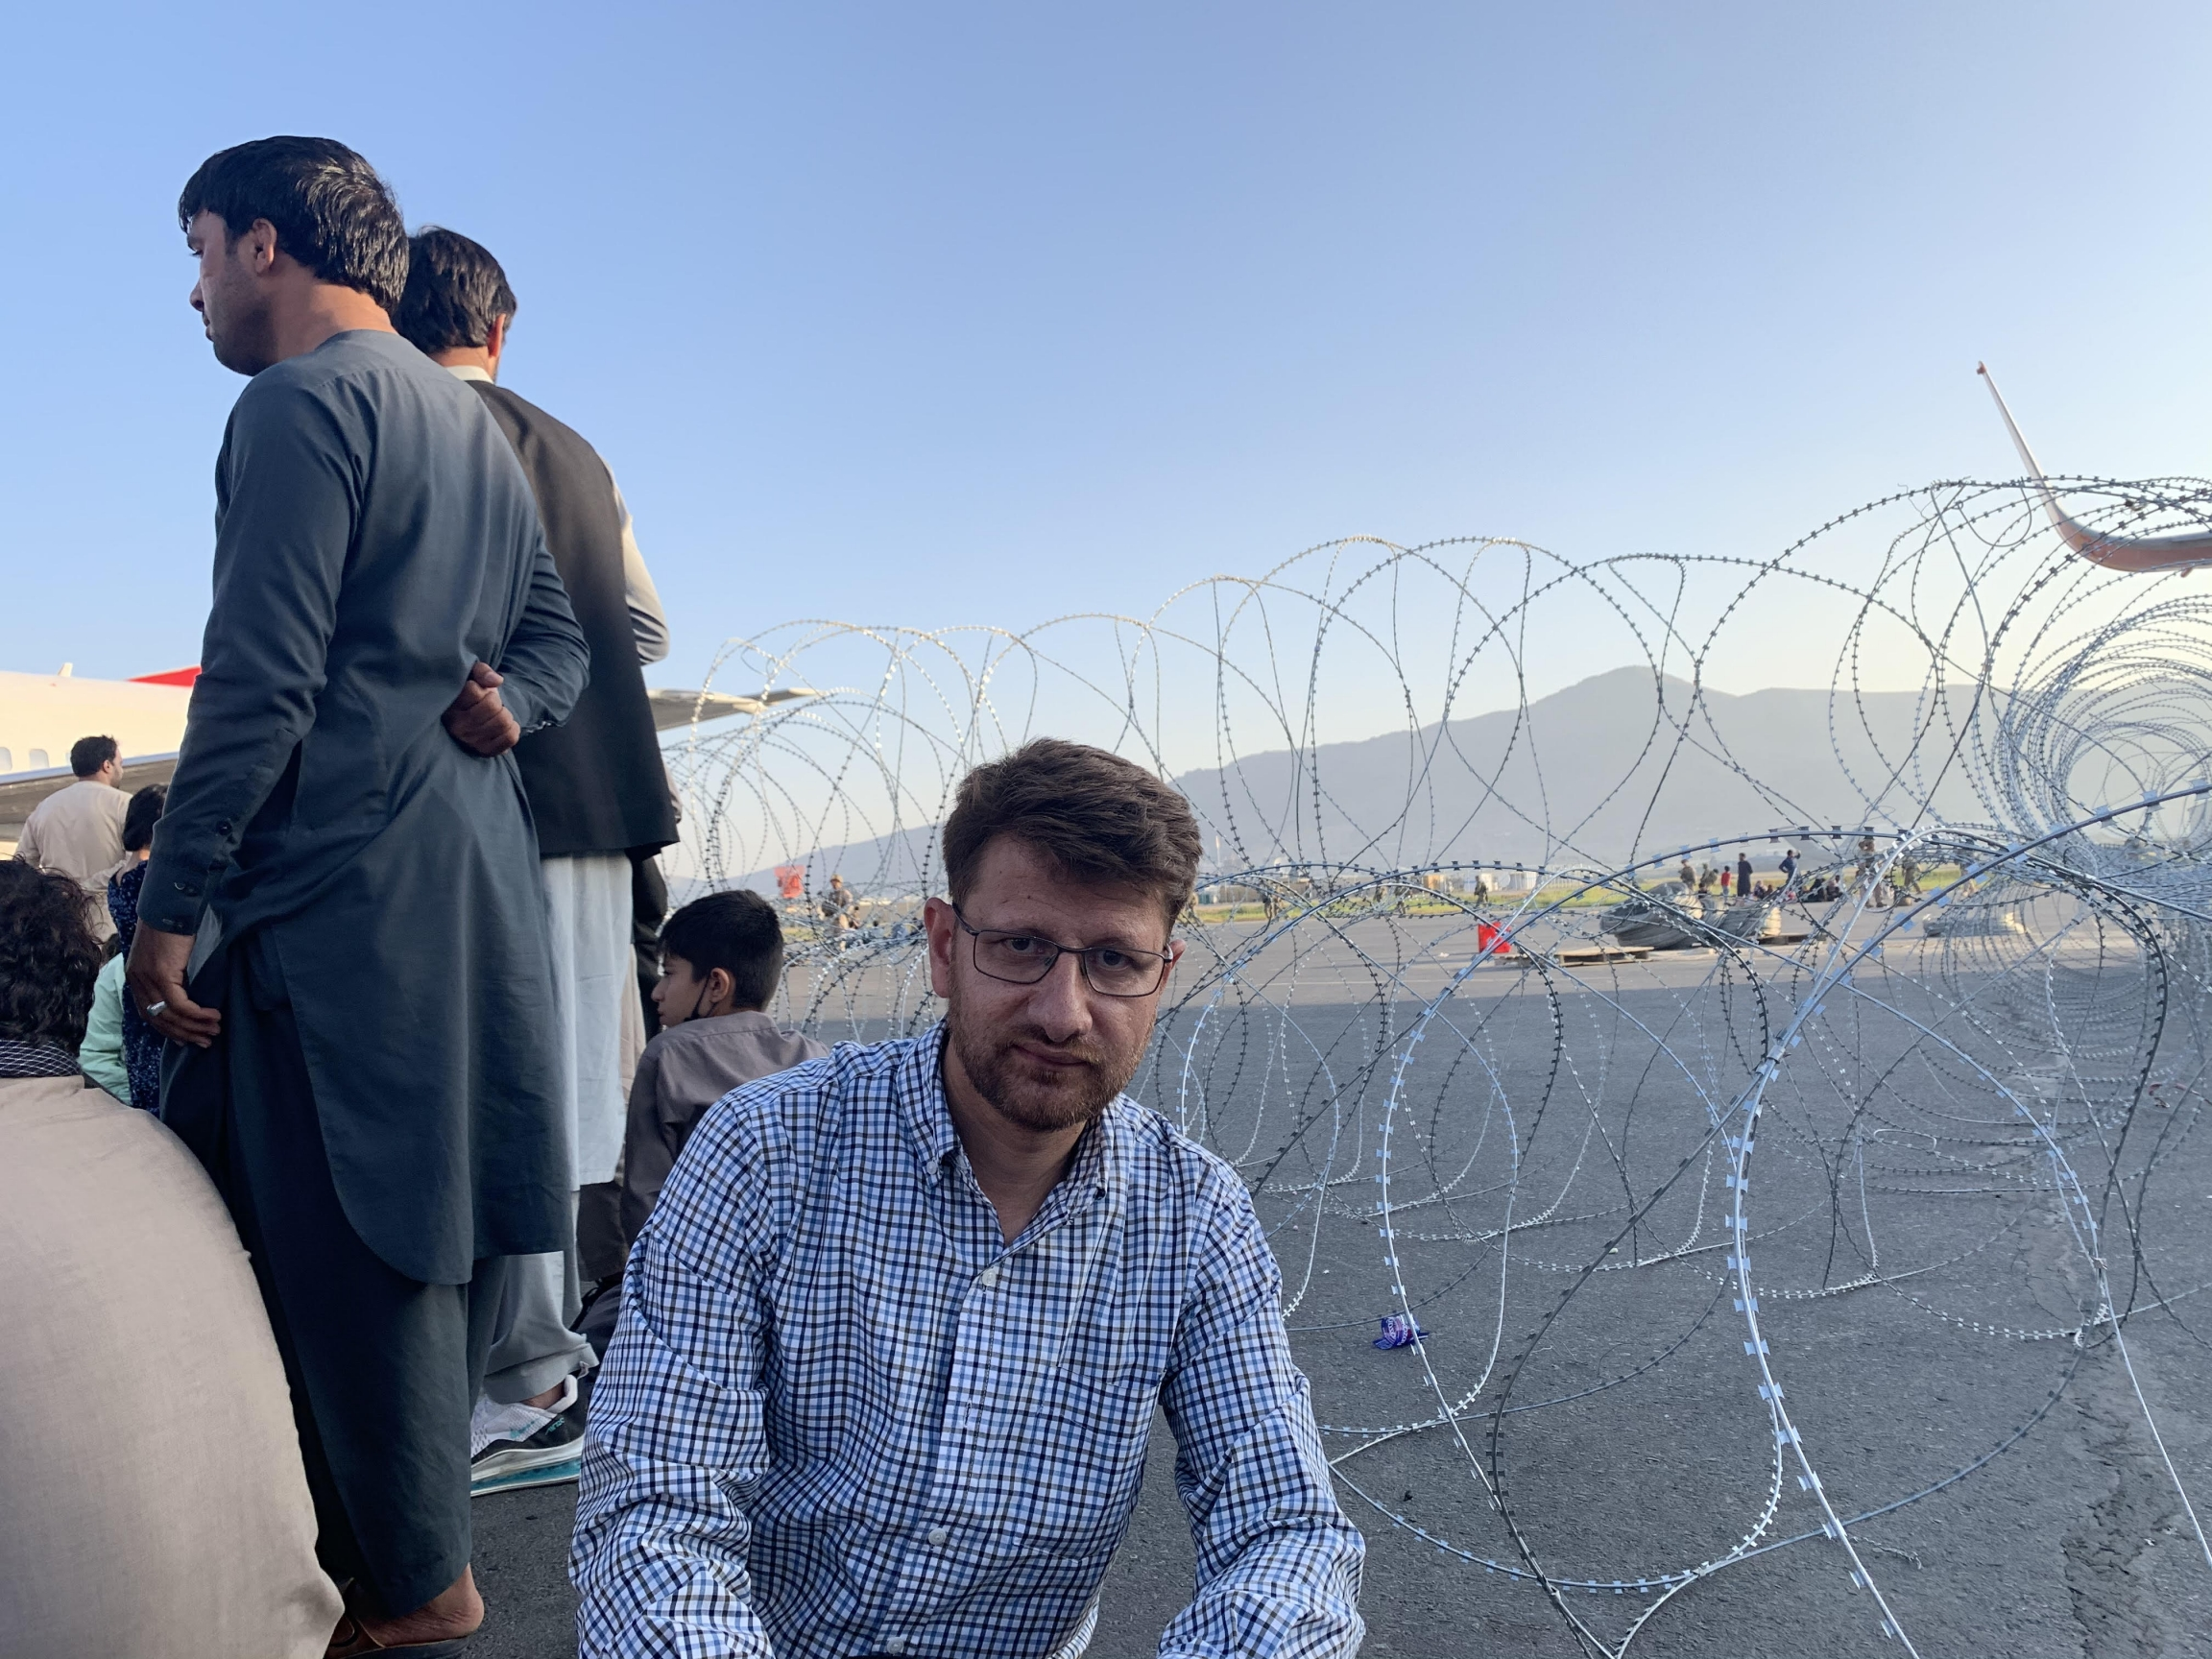 Hanif Sufizada kneeling besides a coil of barbed wire on the airport tarmac, amid a crowd of civilians